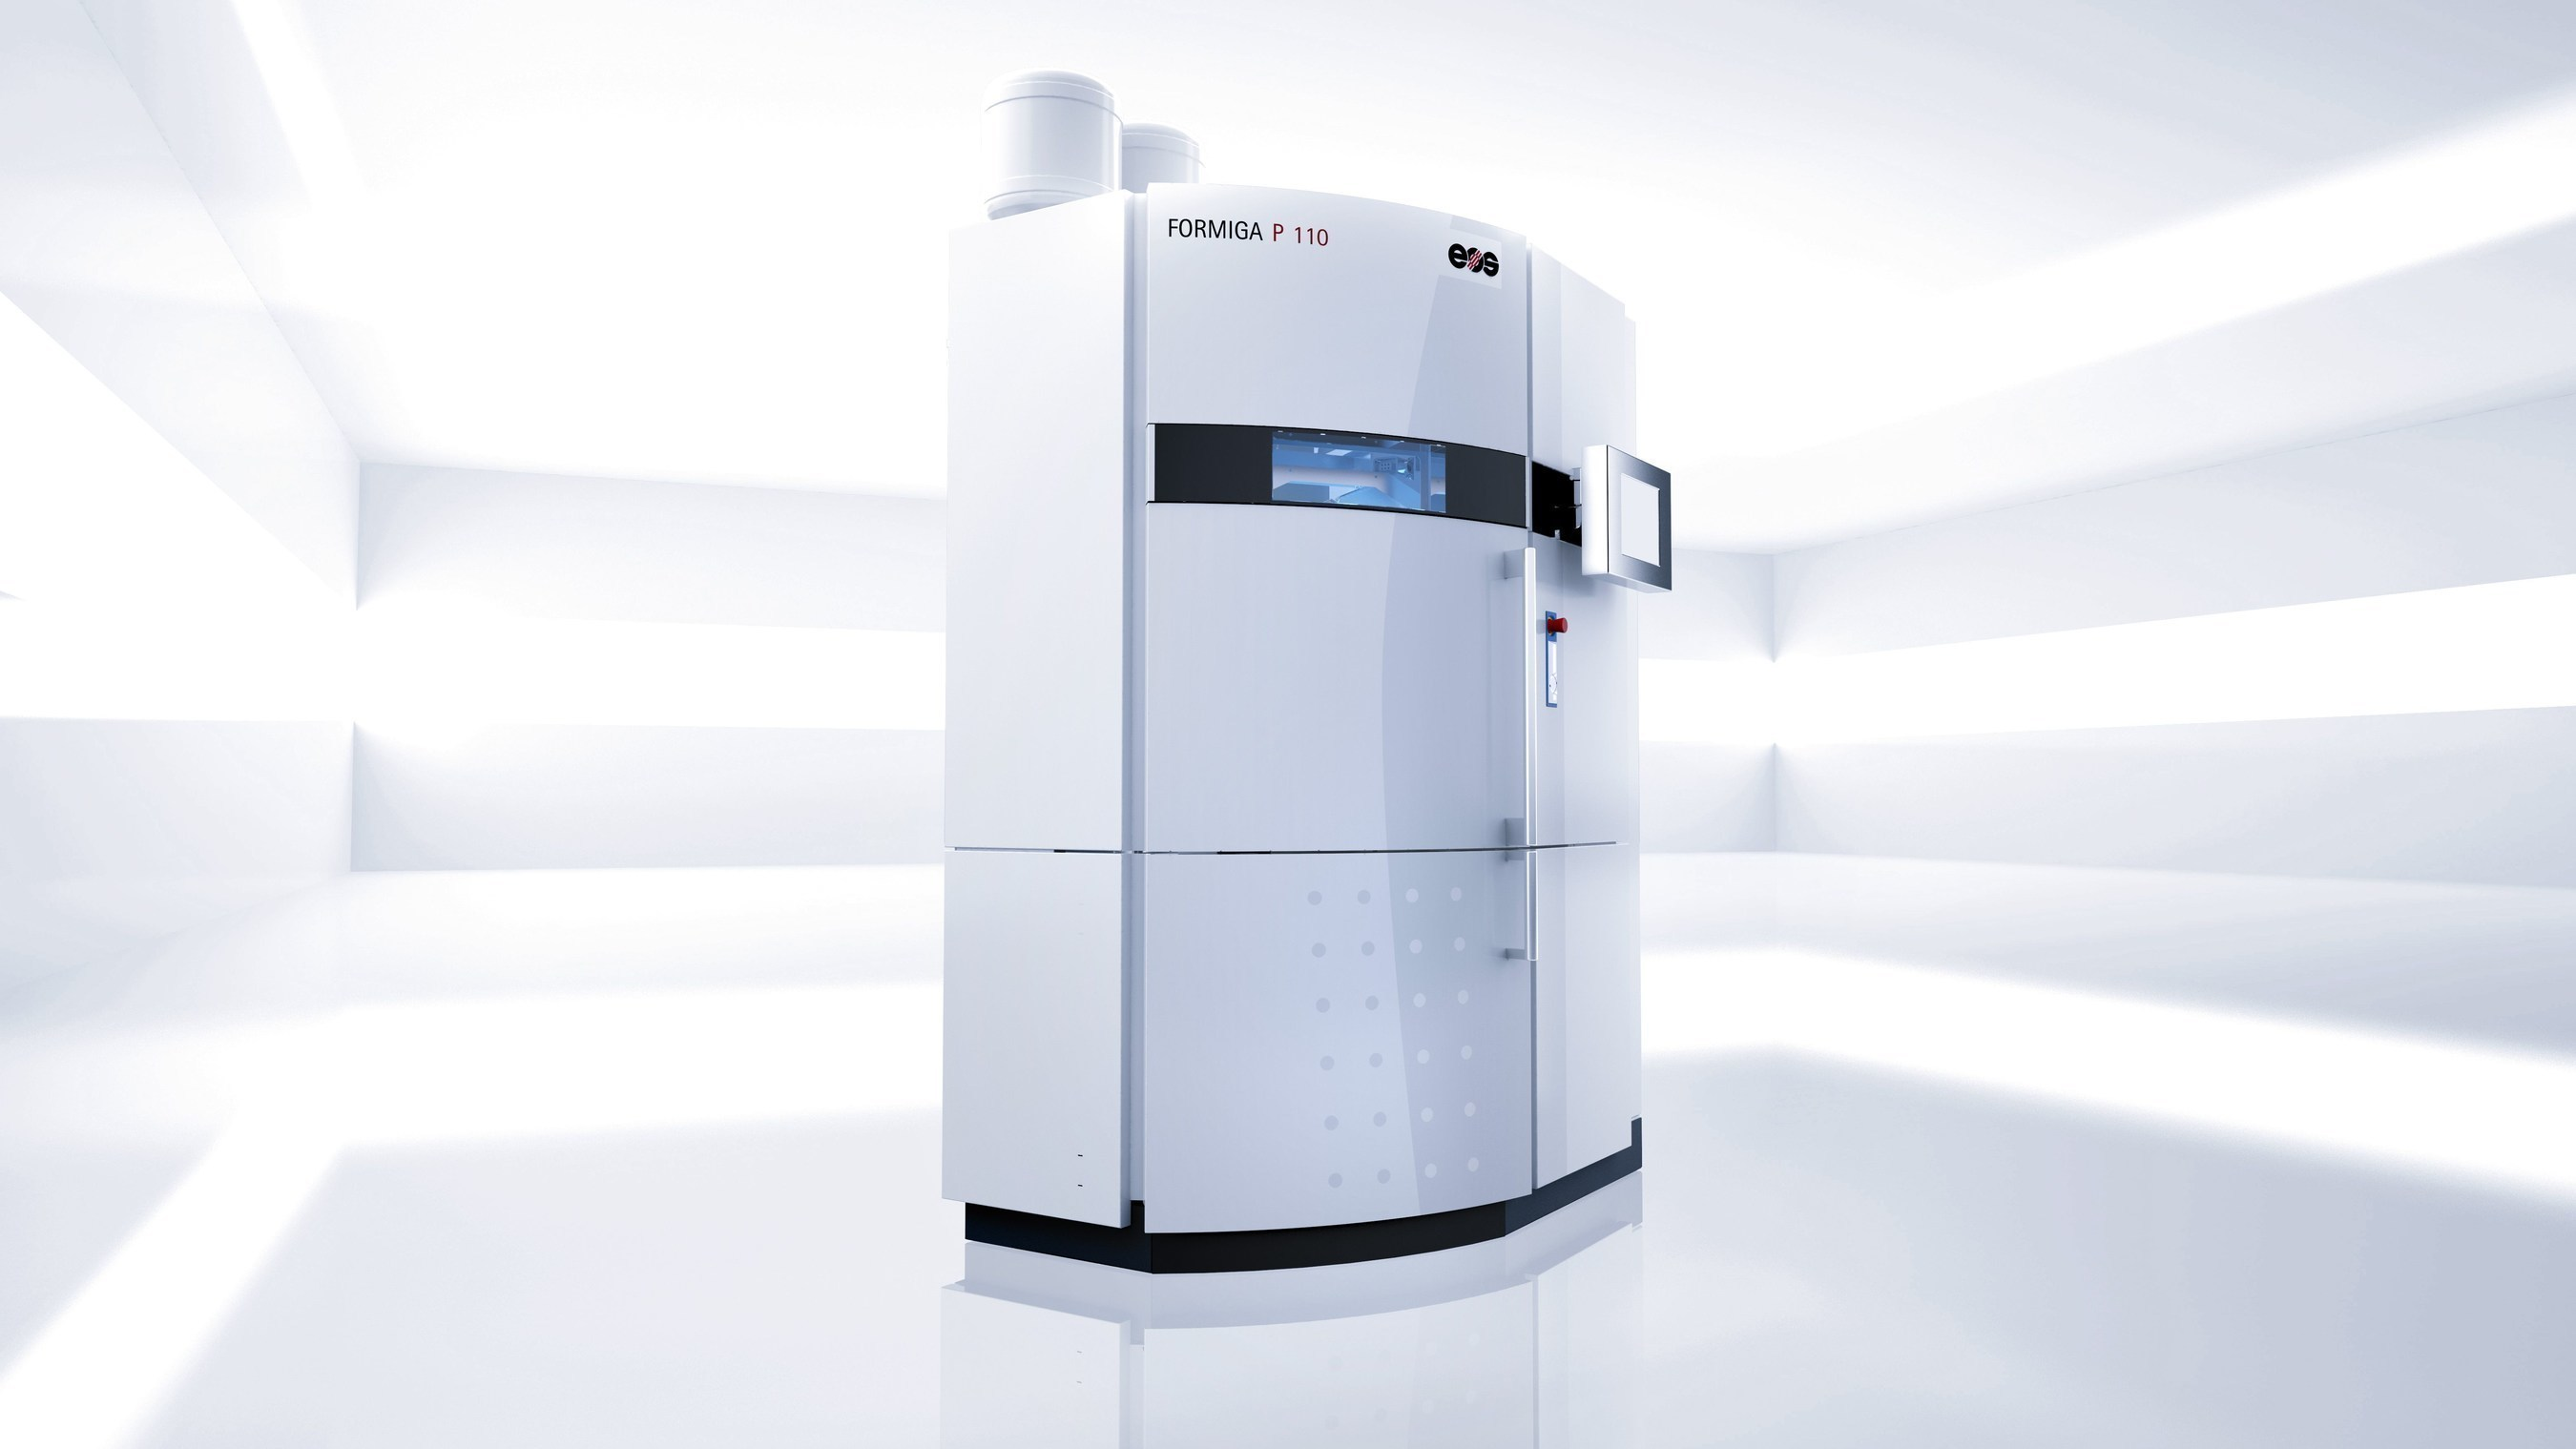 FORMIGA P 110 is a flexible, cost-efficient and highly productive system for the Additive Manufacturing of polymer parts (Source EOS). (PRNewsFoto/EOS Electro Optical Systems)